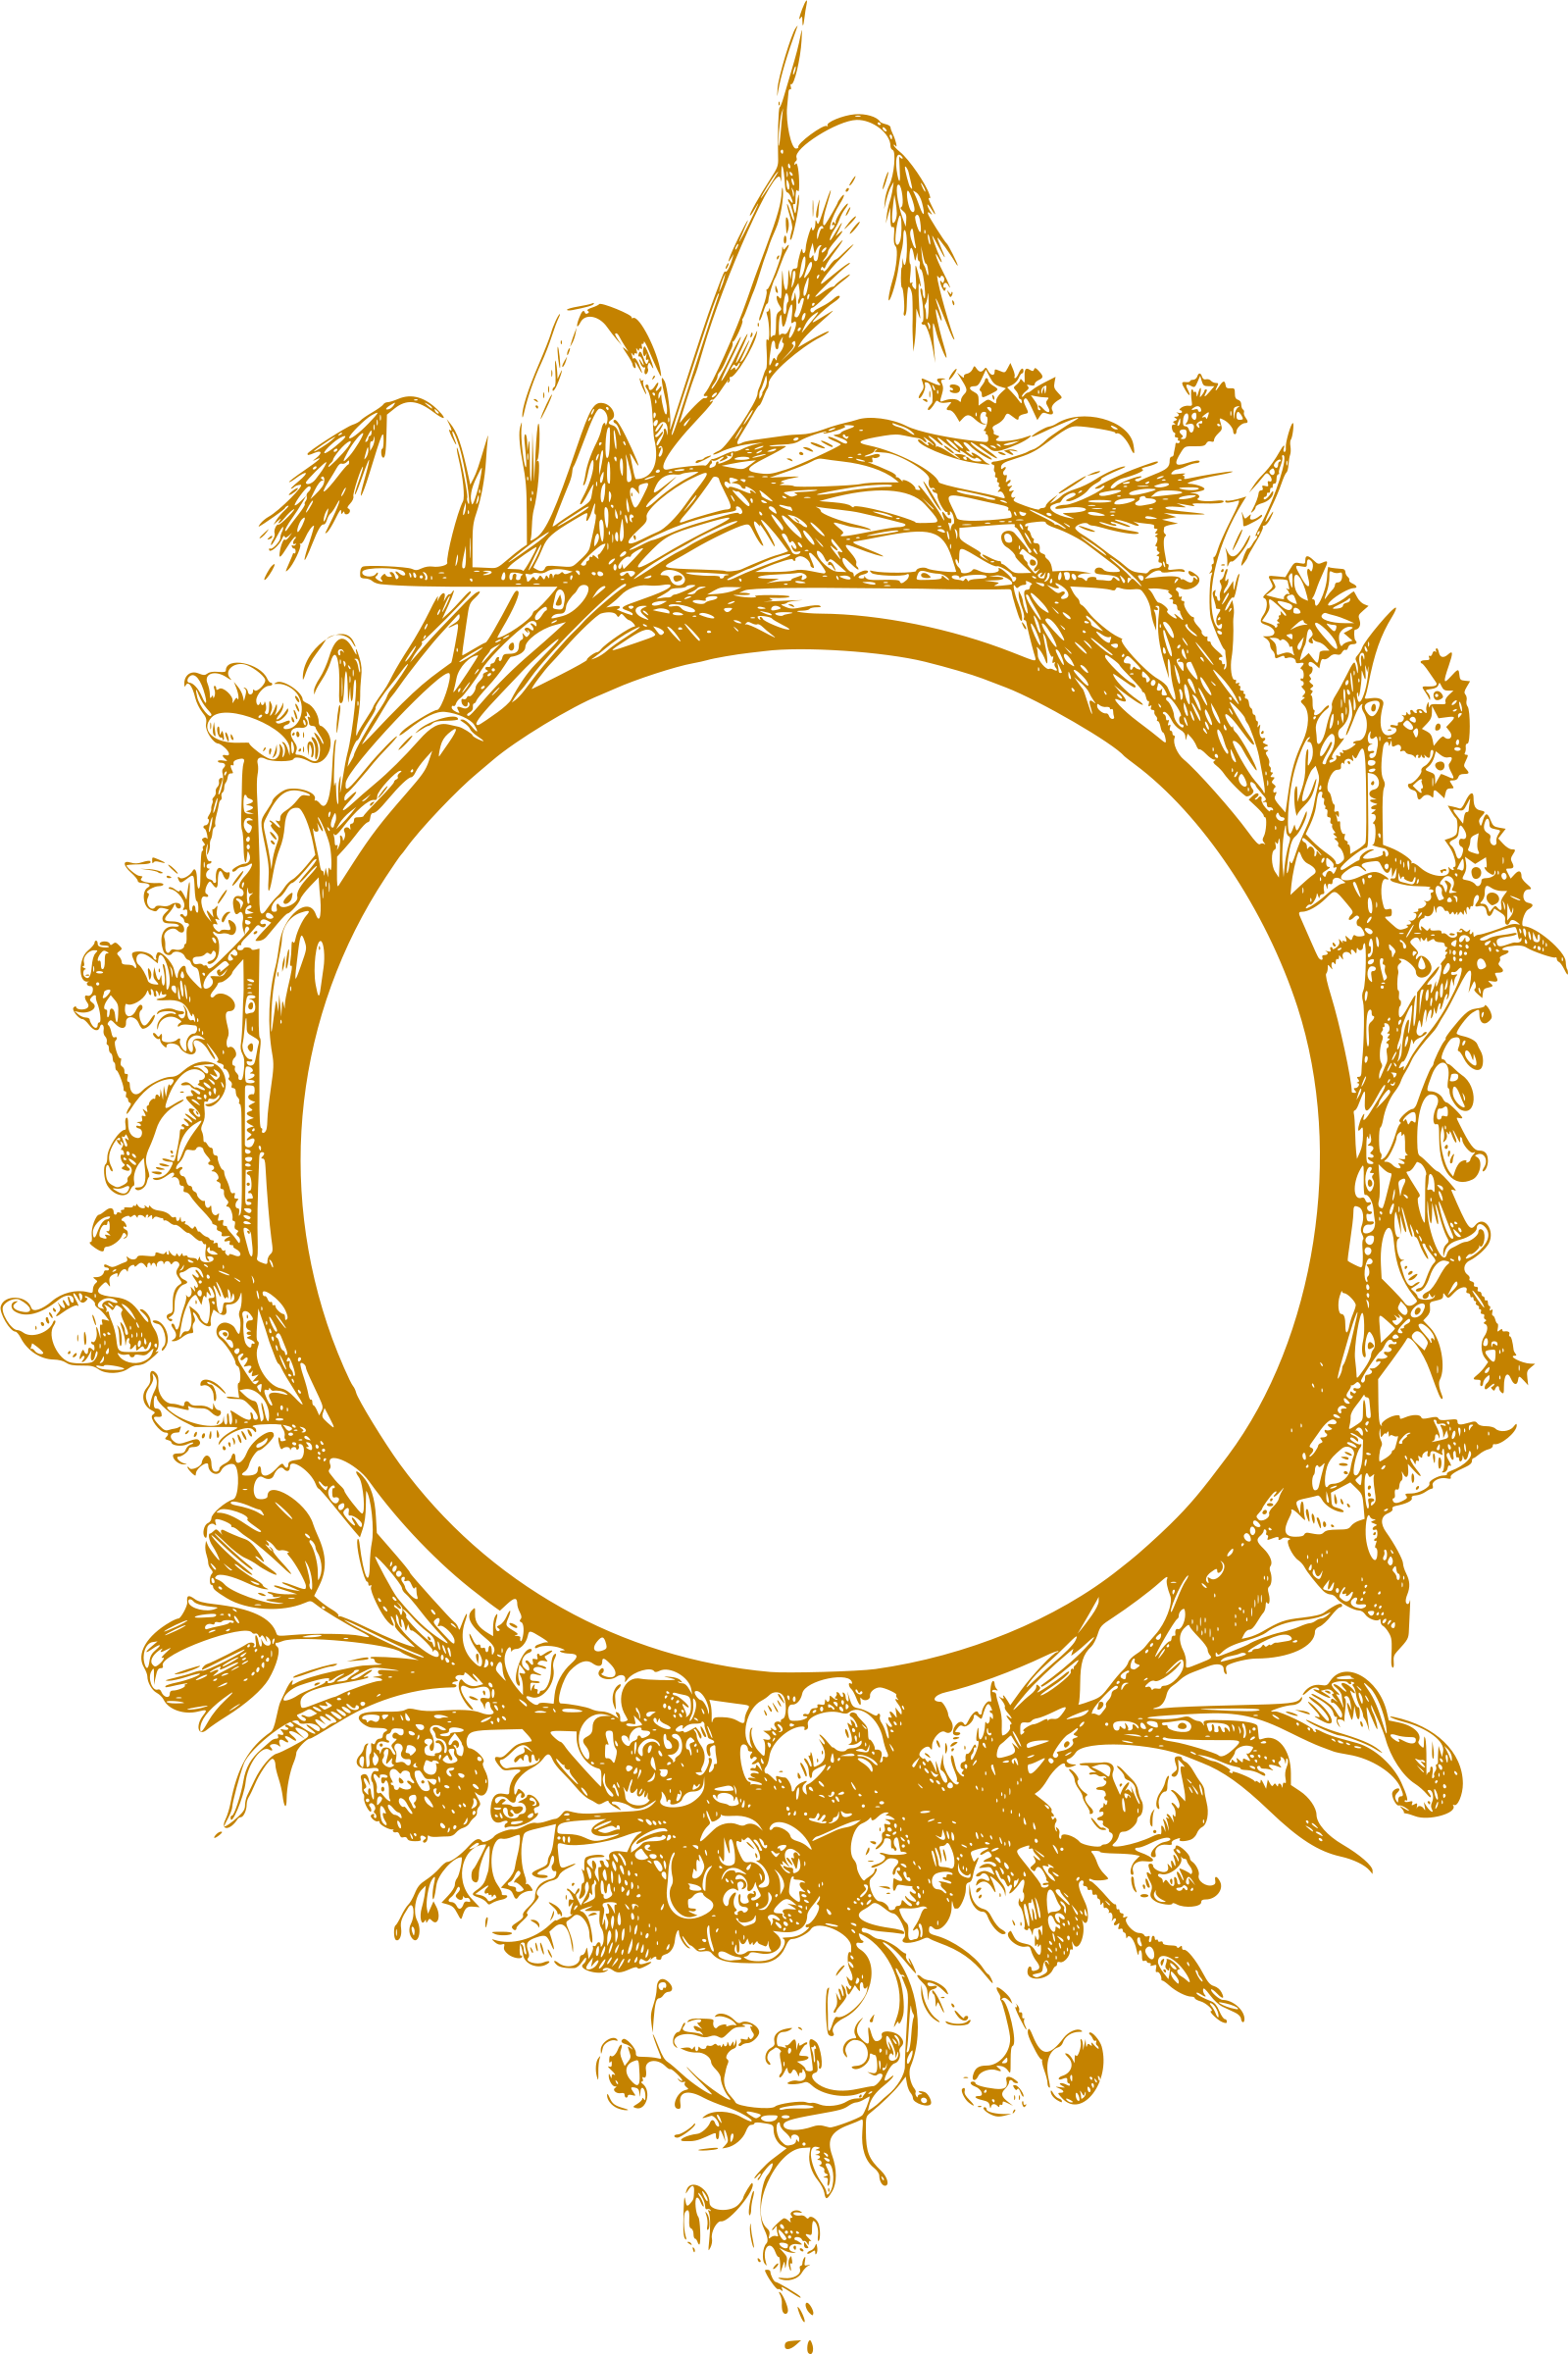 Flowery frame 2 (golden) by Firkin